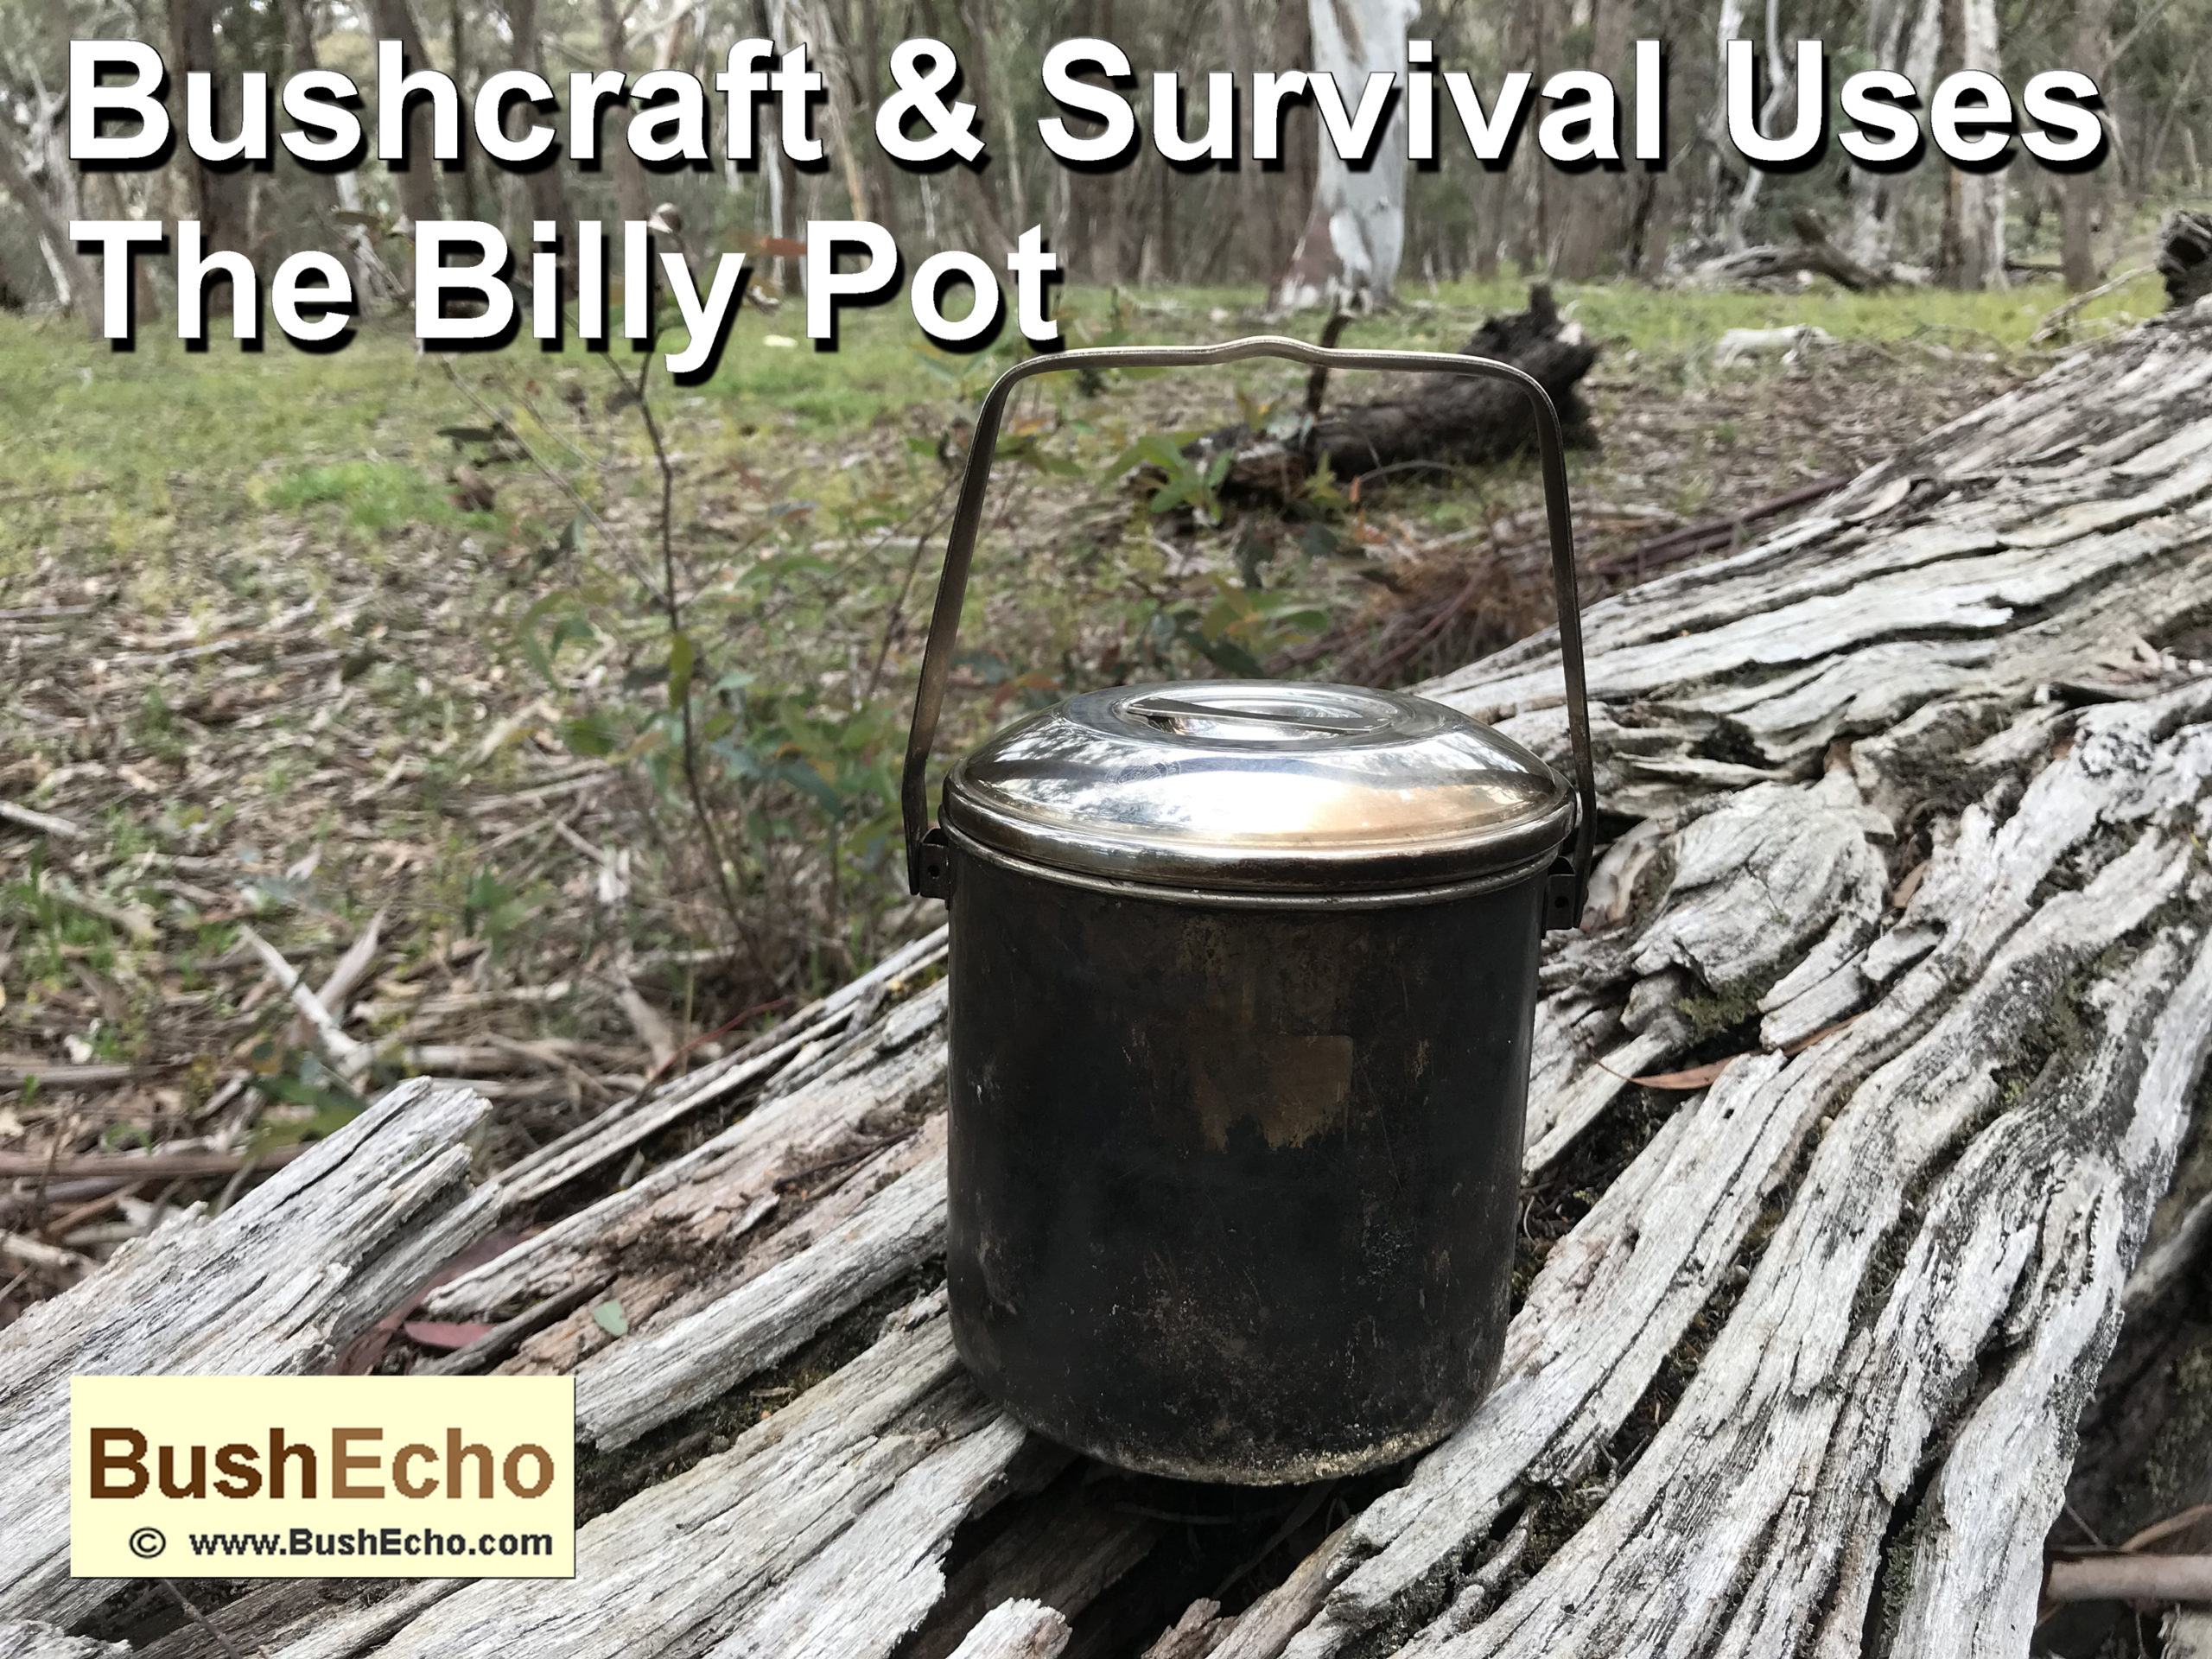 Bushcraft & Survival Uses Billy Pot